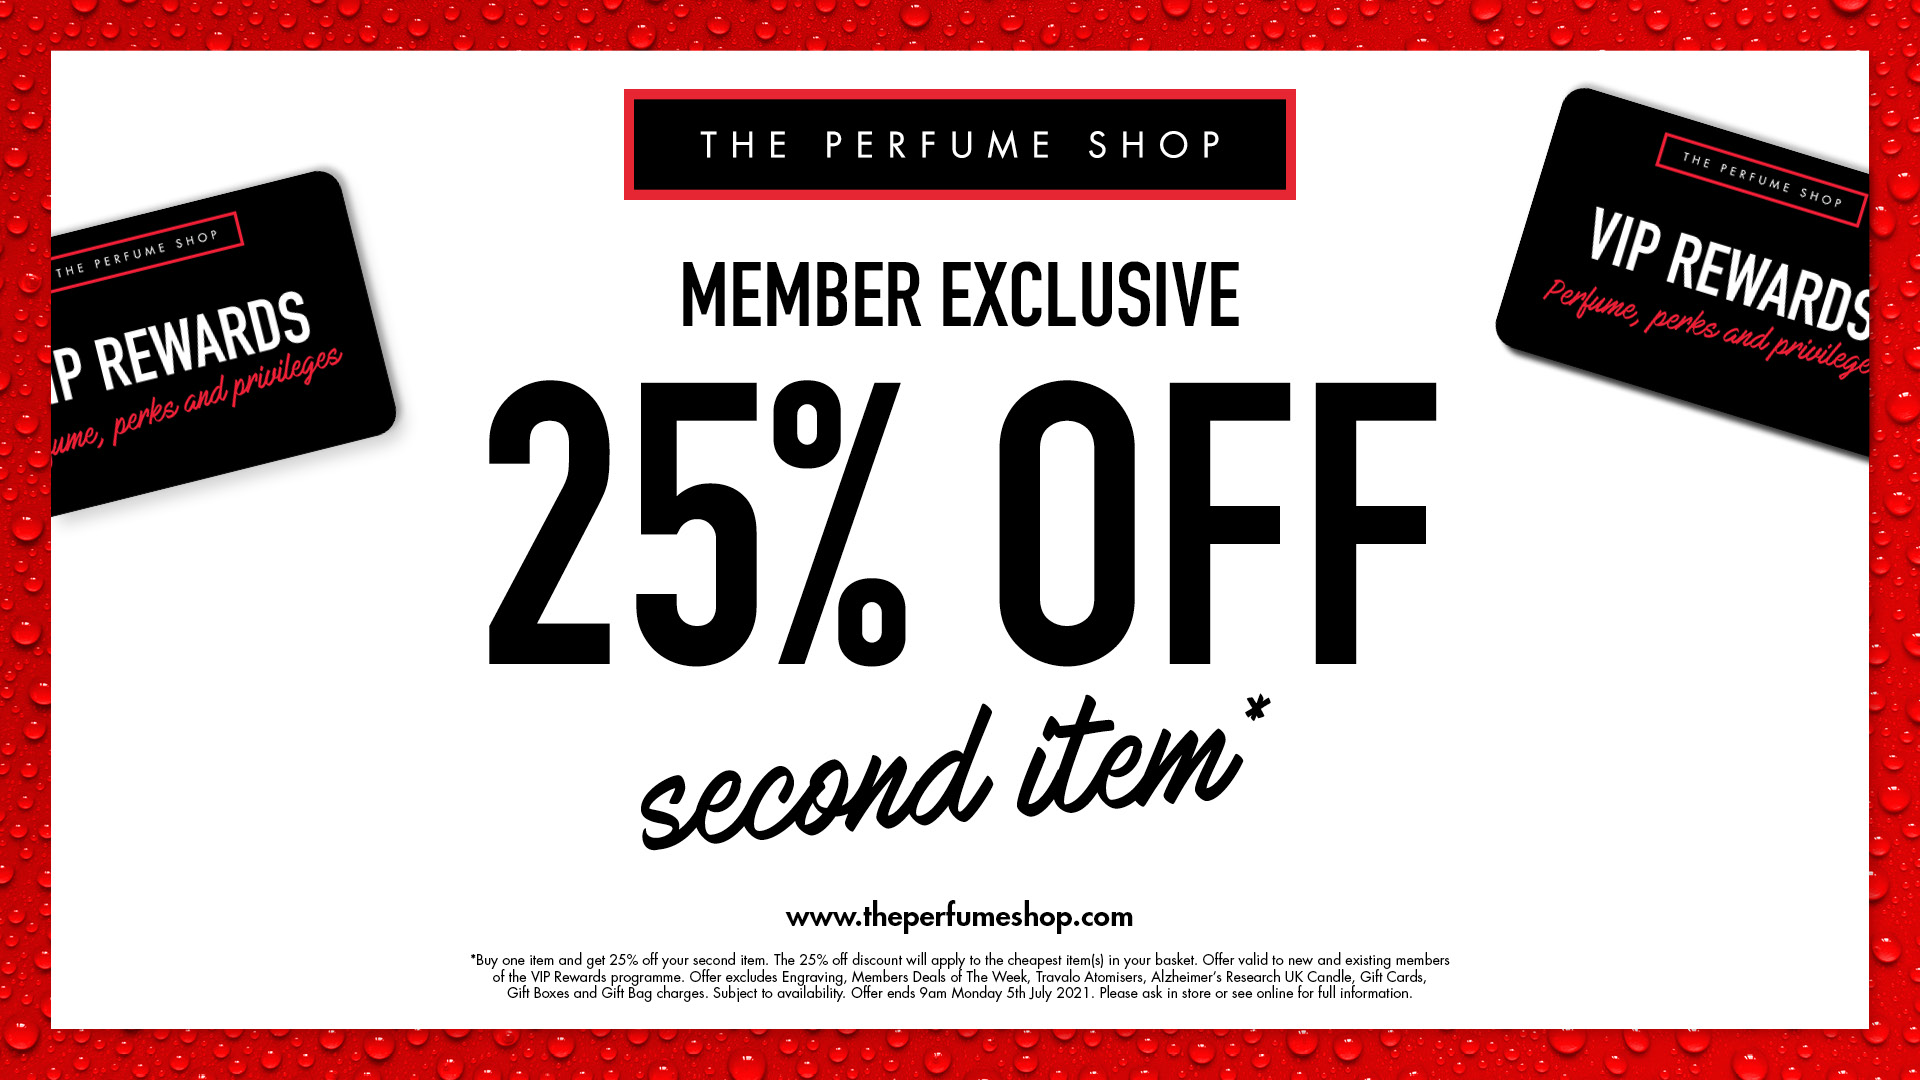 Members receive 25% off second item. Sign up today and visit us in store. @theperfumeshop